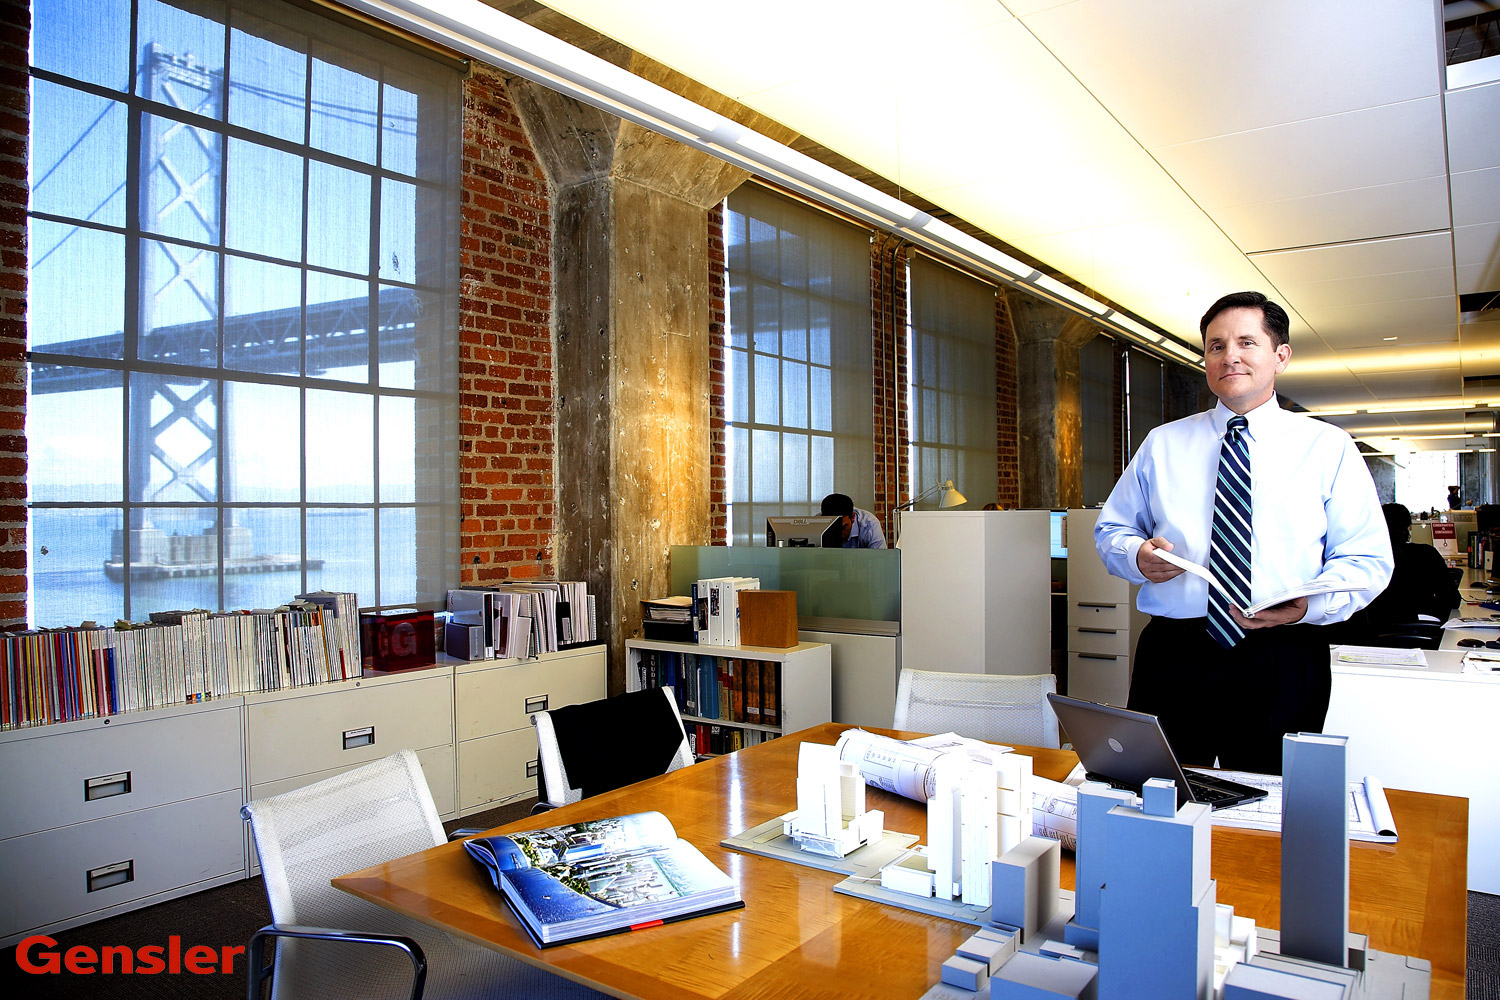 GENSLER SAN FRANSICO ARCHITECTURE FIRM EDITORIAL PROFILE PORTRAIT PHOTOGRAPHY BY © JONATHAN R. BECKERMAN.jpg